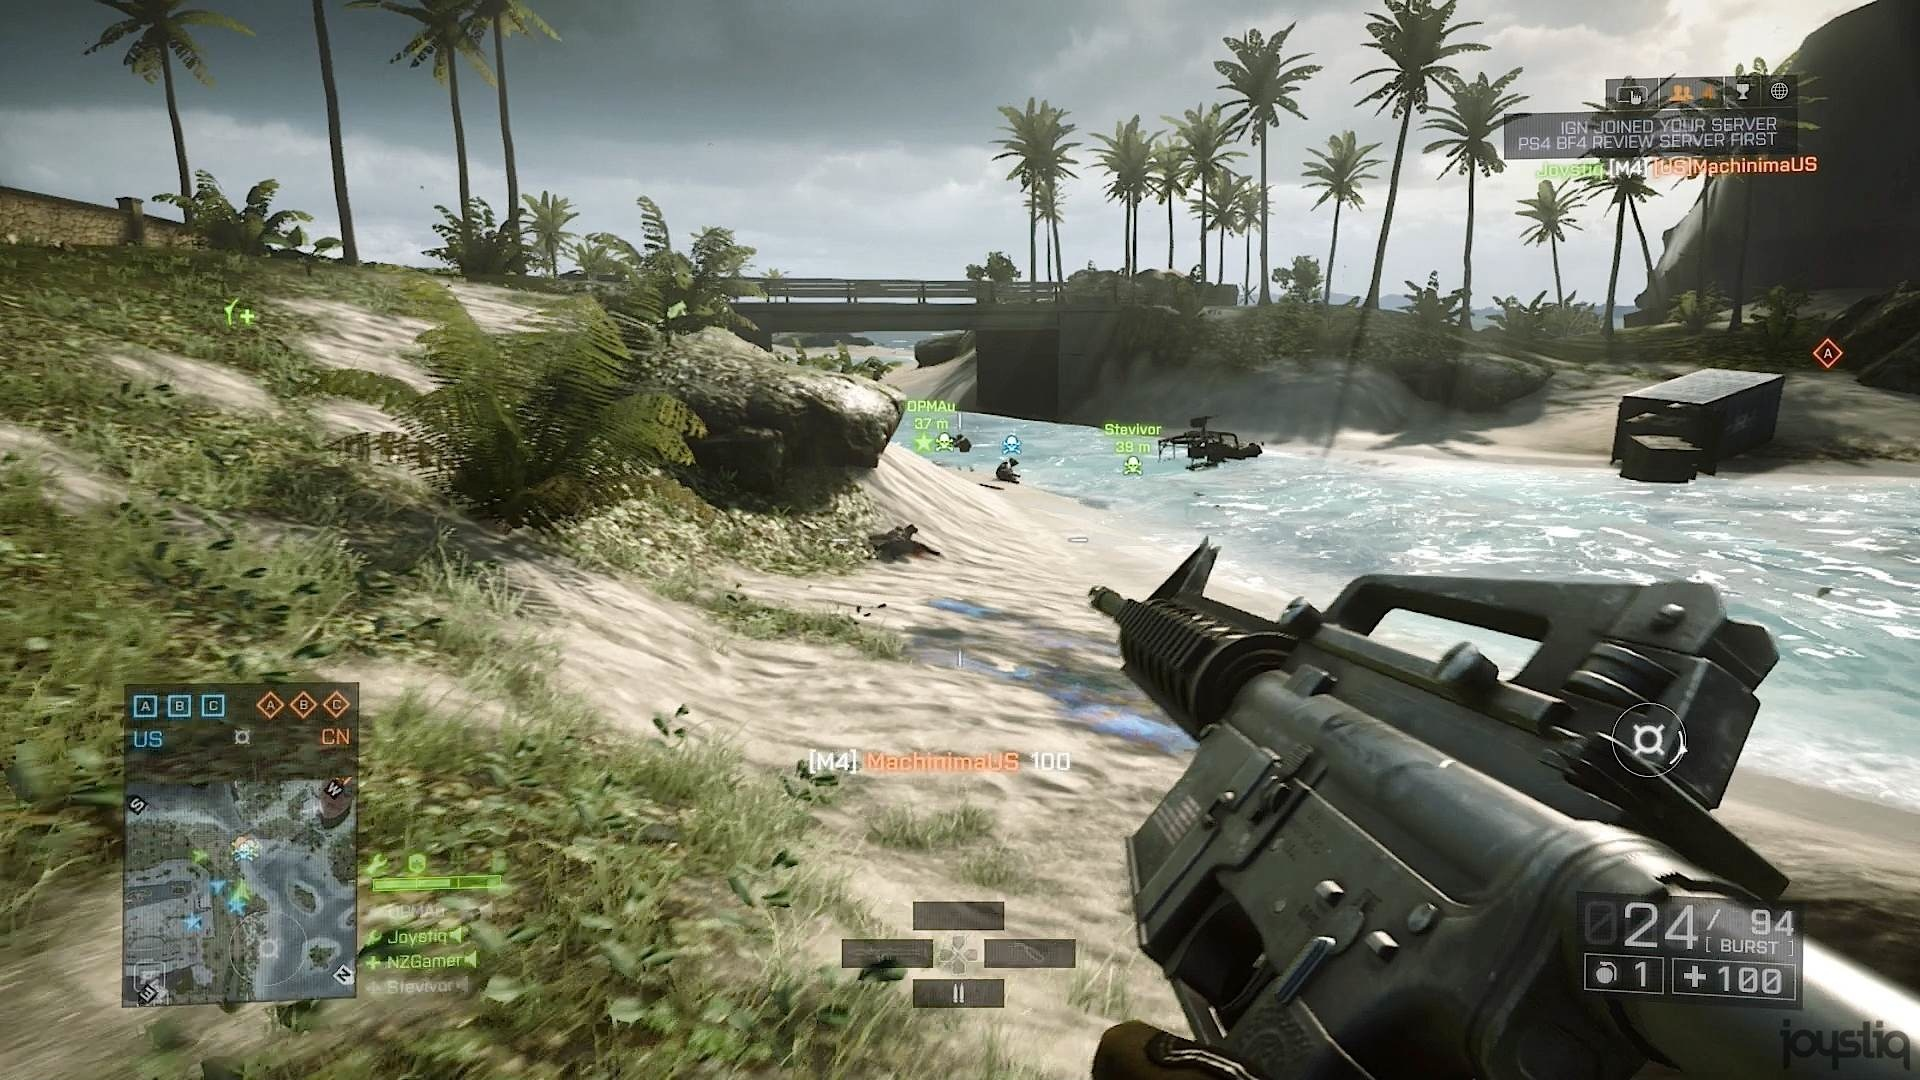 how to play multiplayer on battlefield 4 ps4